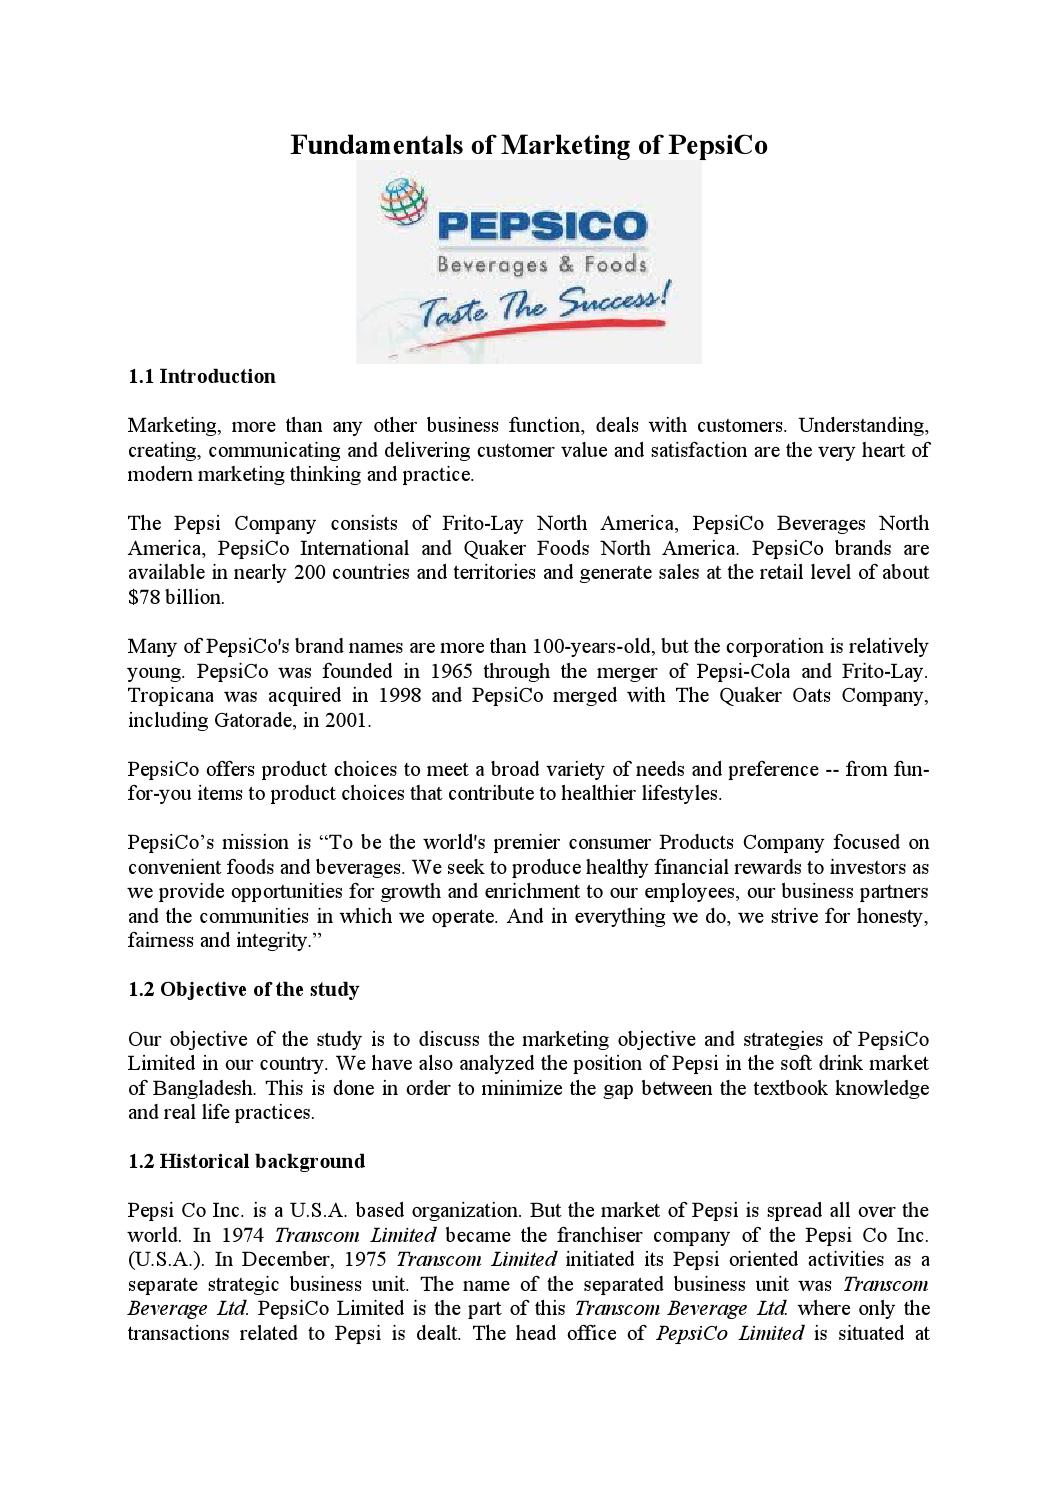 Pepsico fundamentals of marketing by Md Papon - issuu